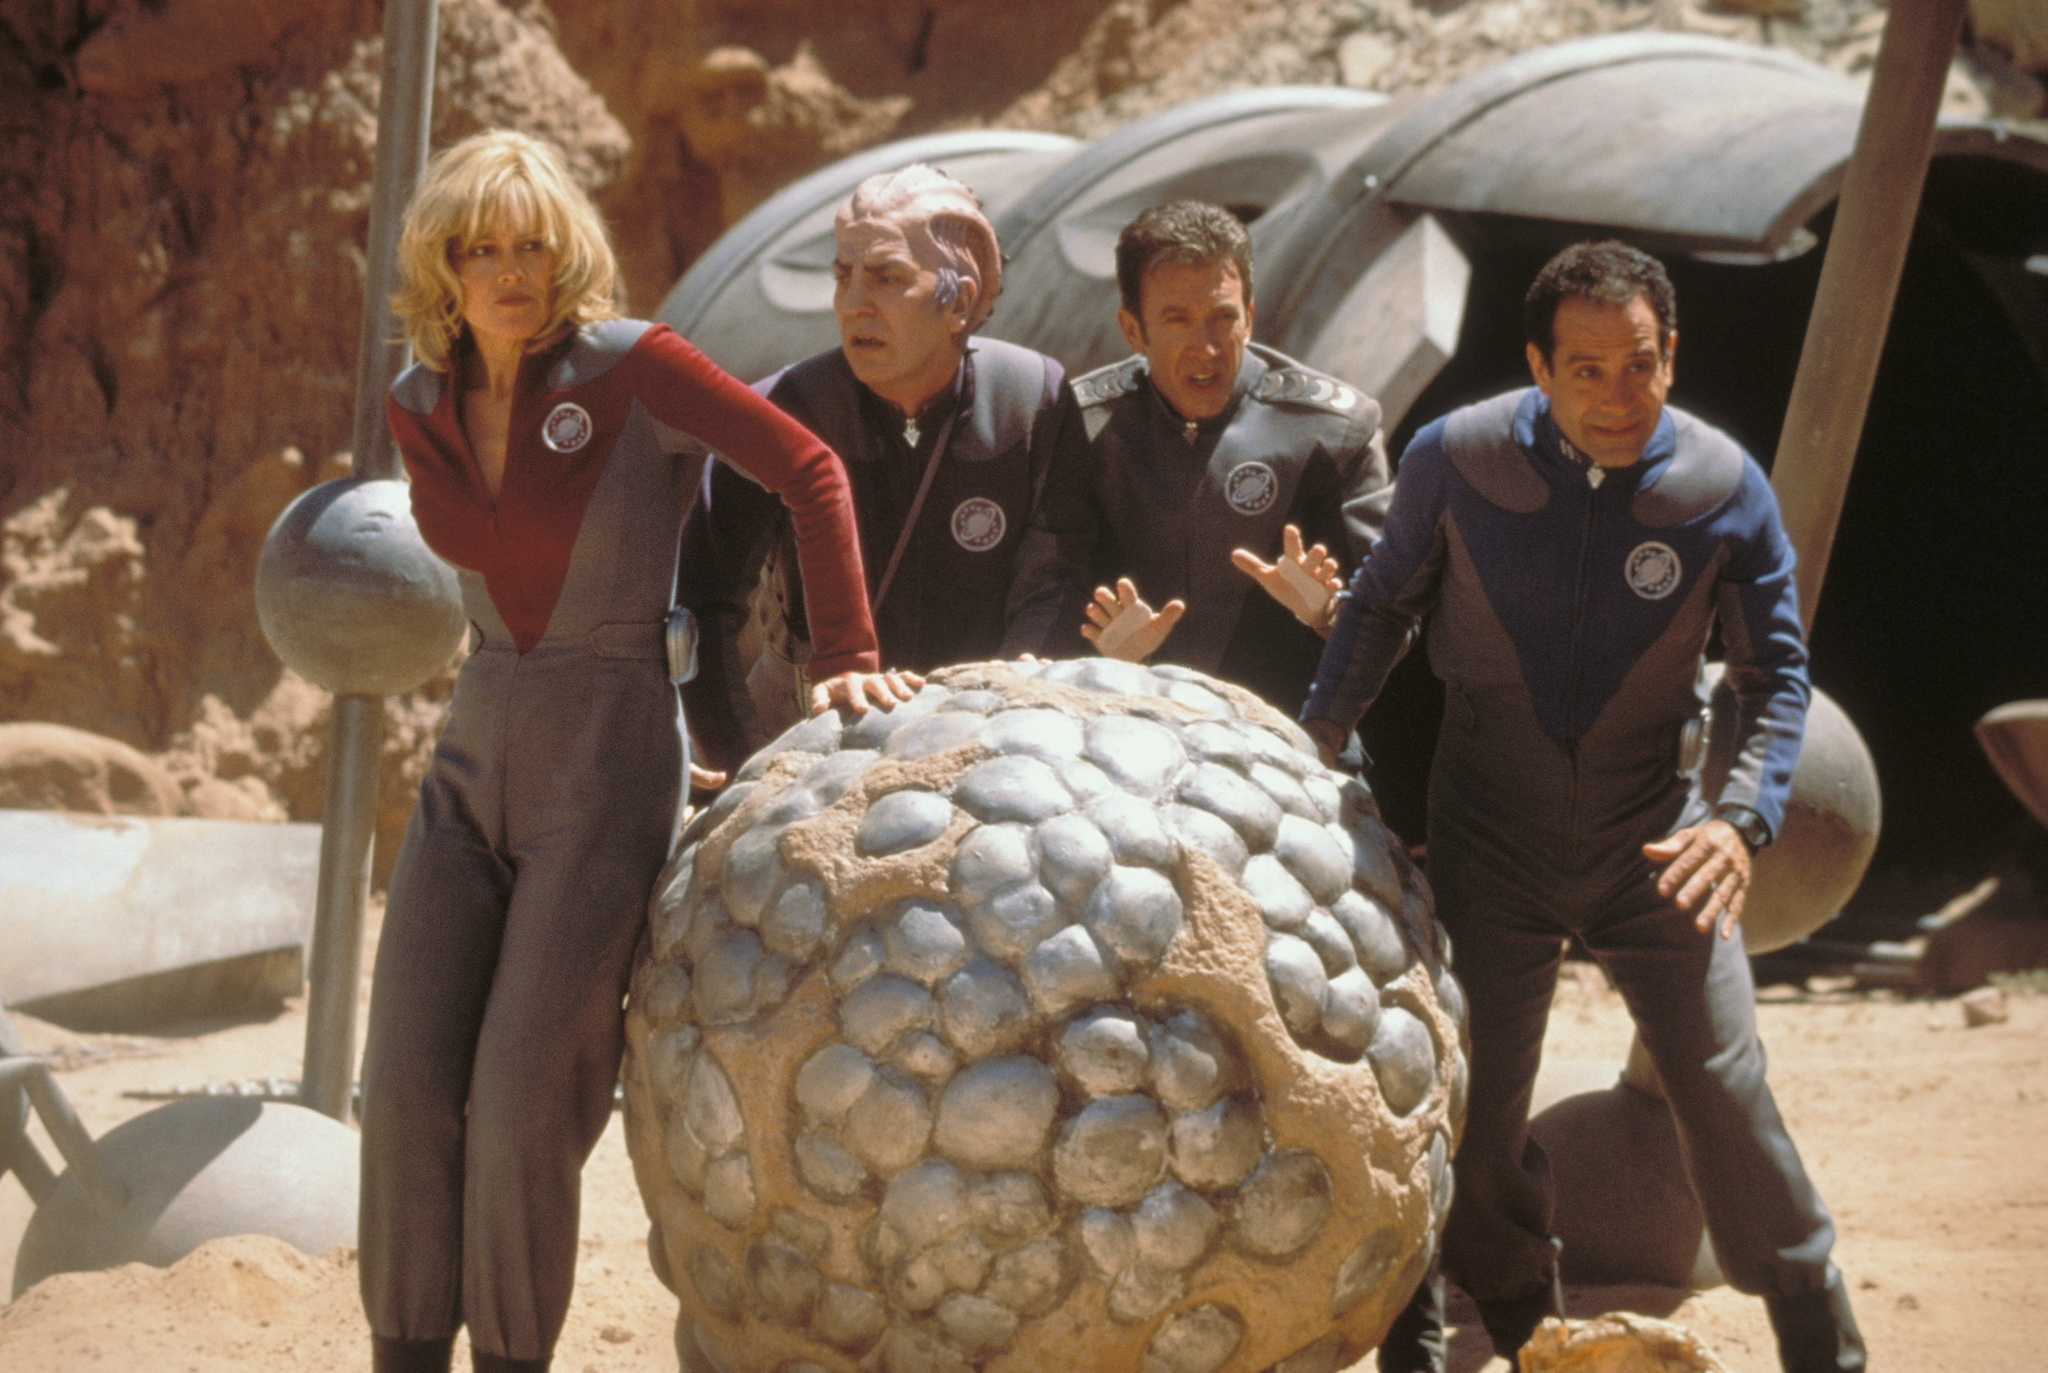 Sci-fi movie: Galaxy Quest